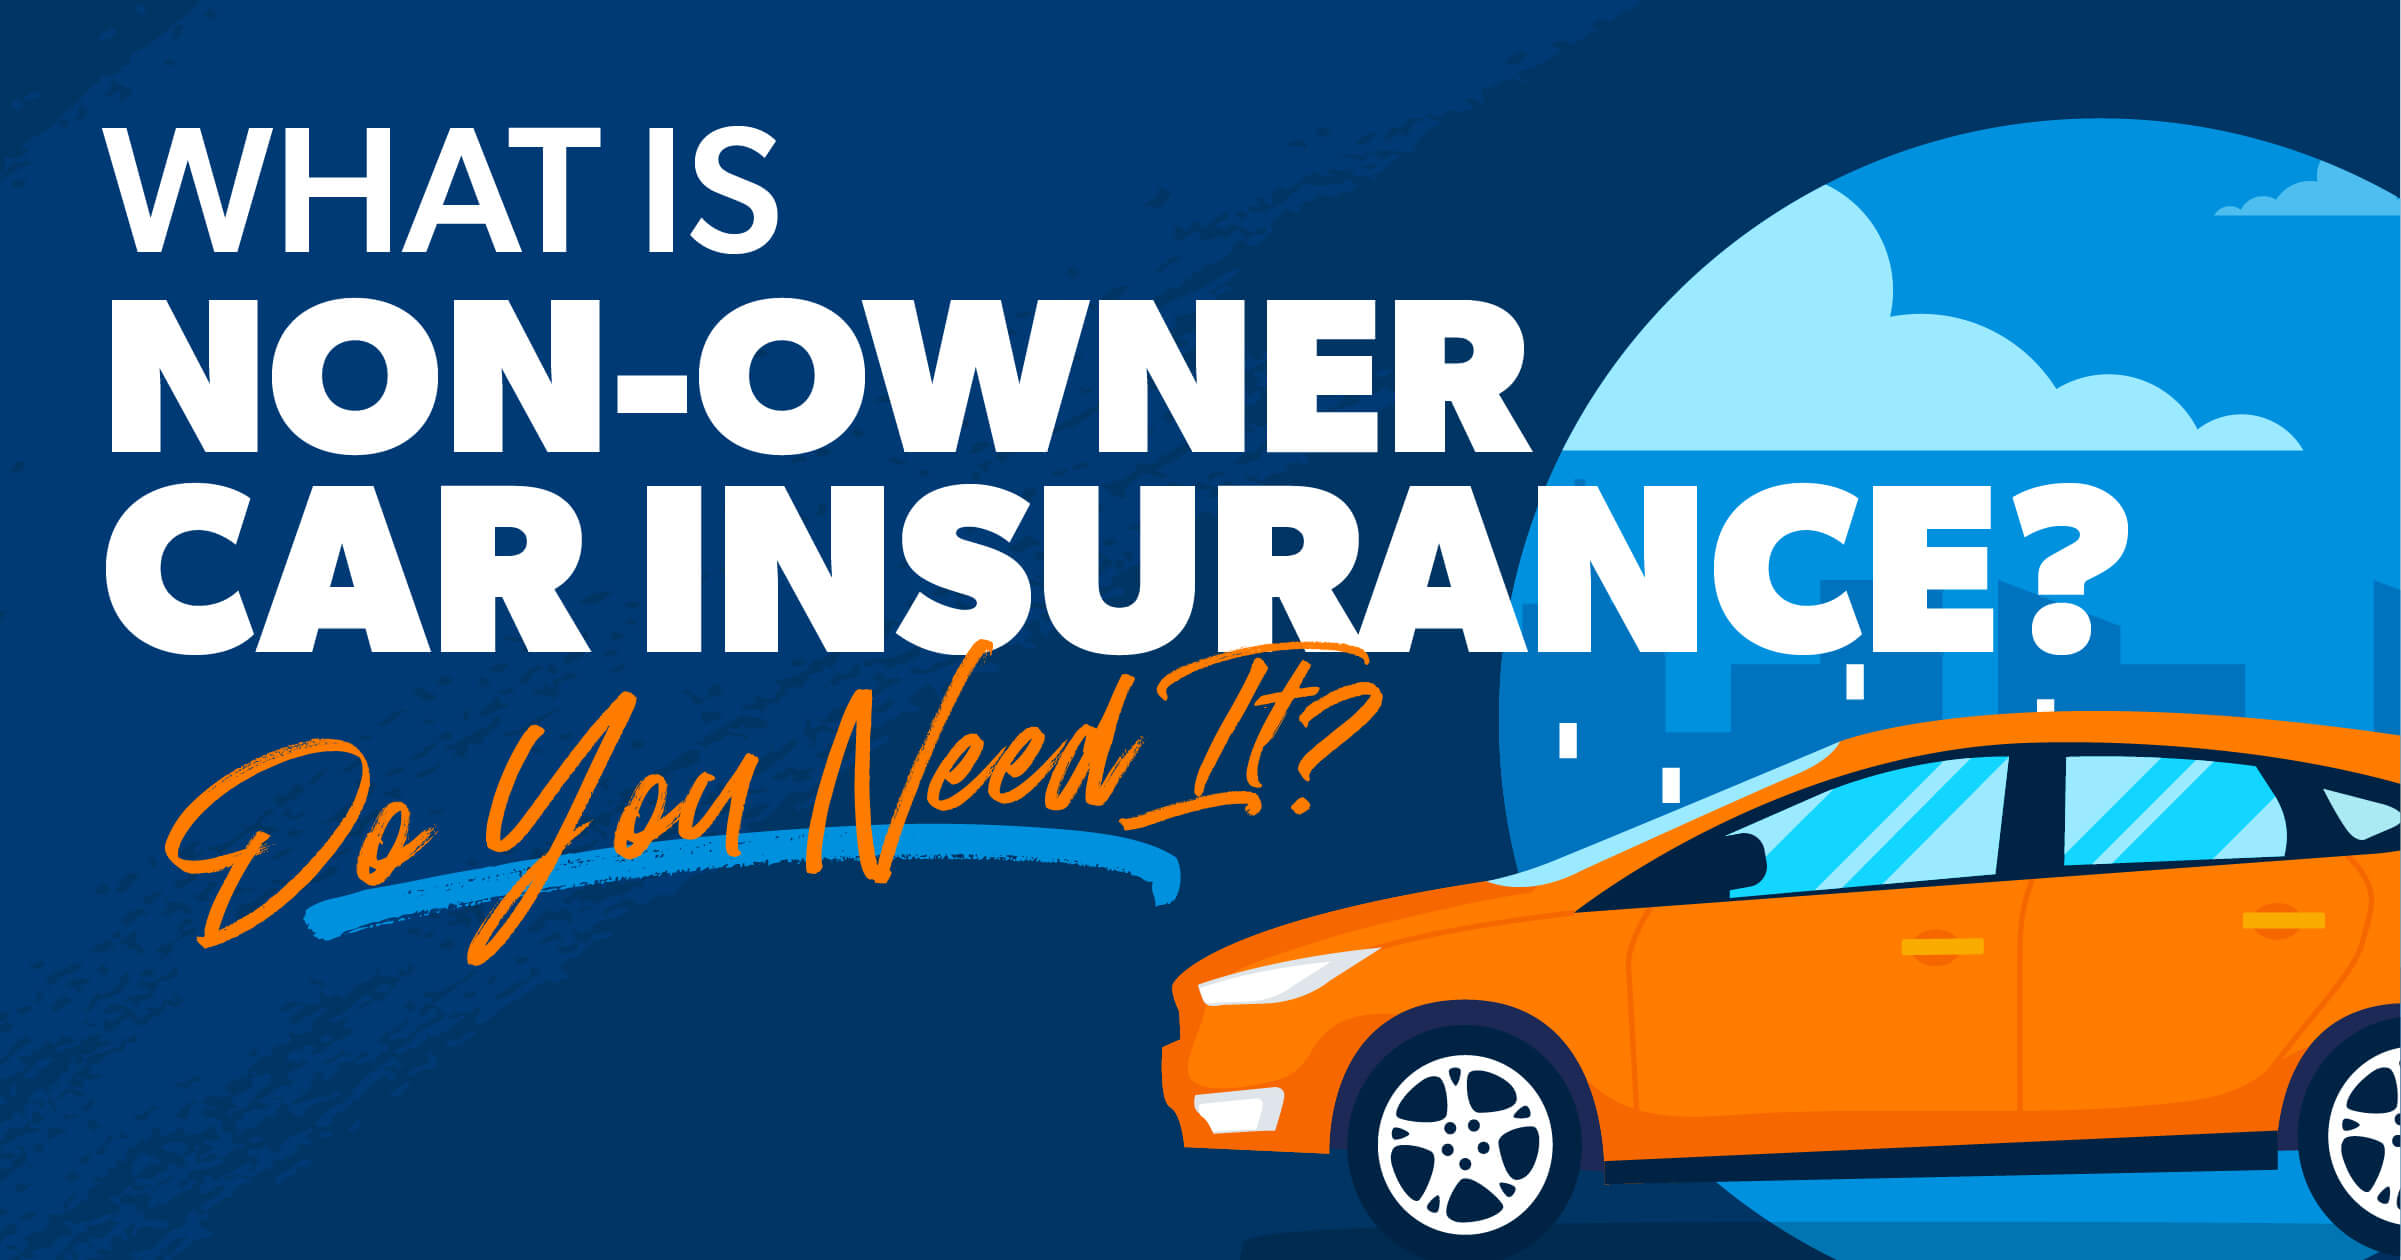 What Is Non-Owner Car Insurance?